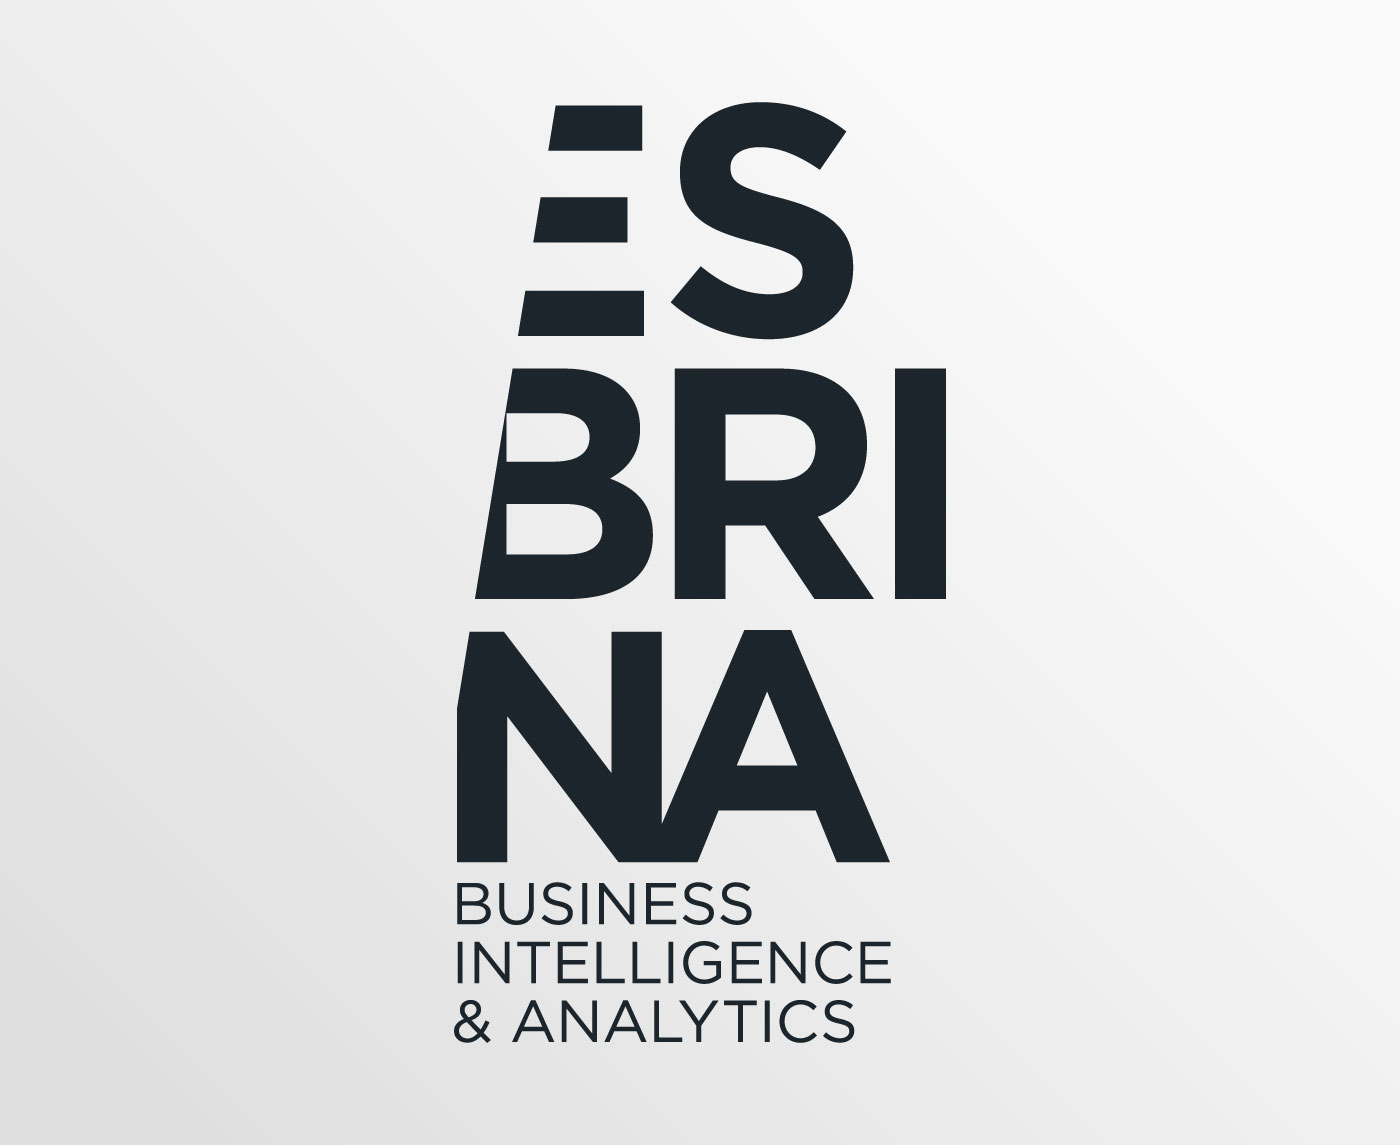 Logotipo Esbrina Business Intelligence & Analitycs